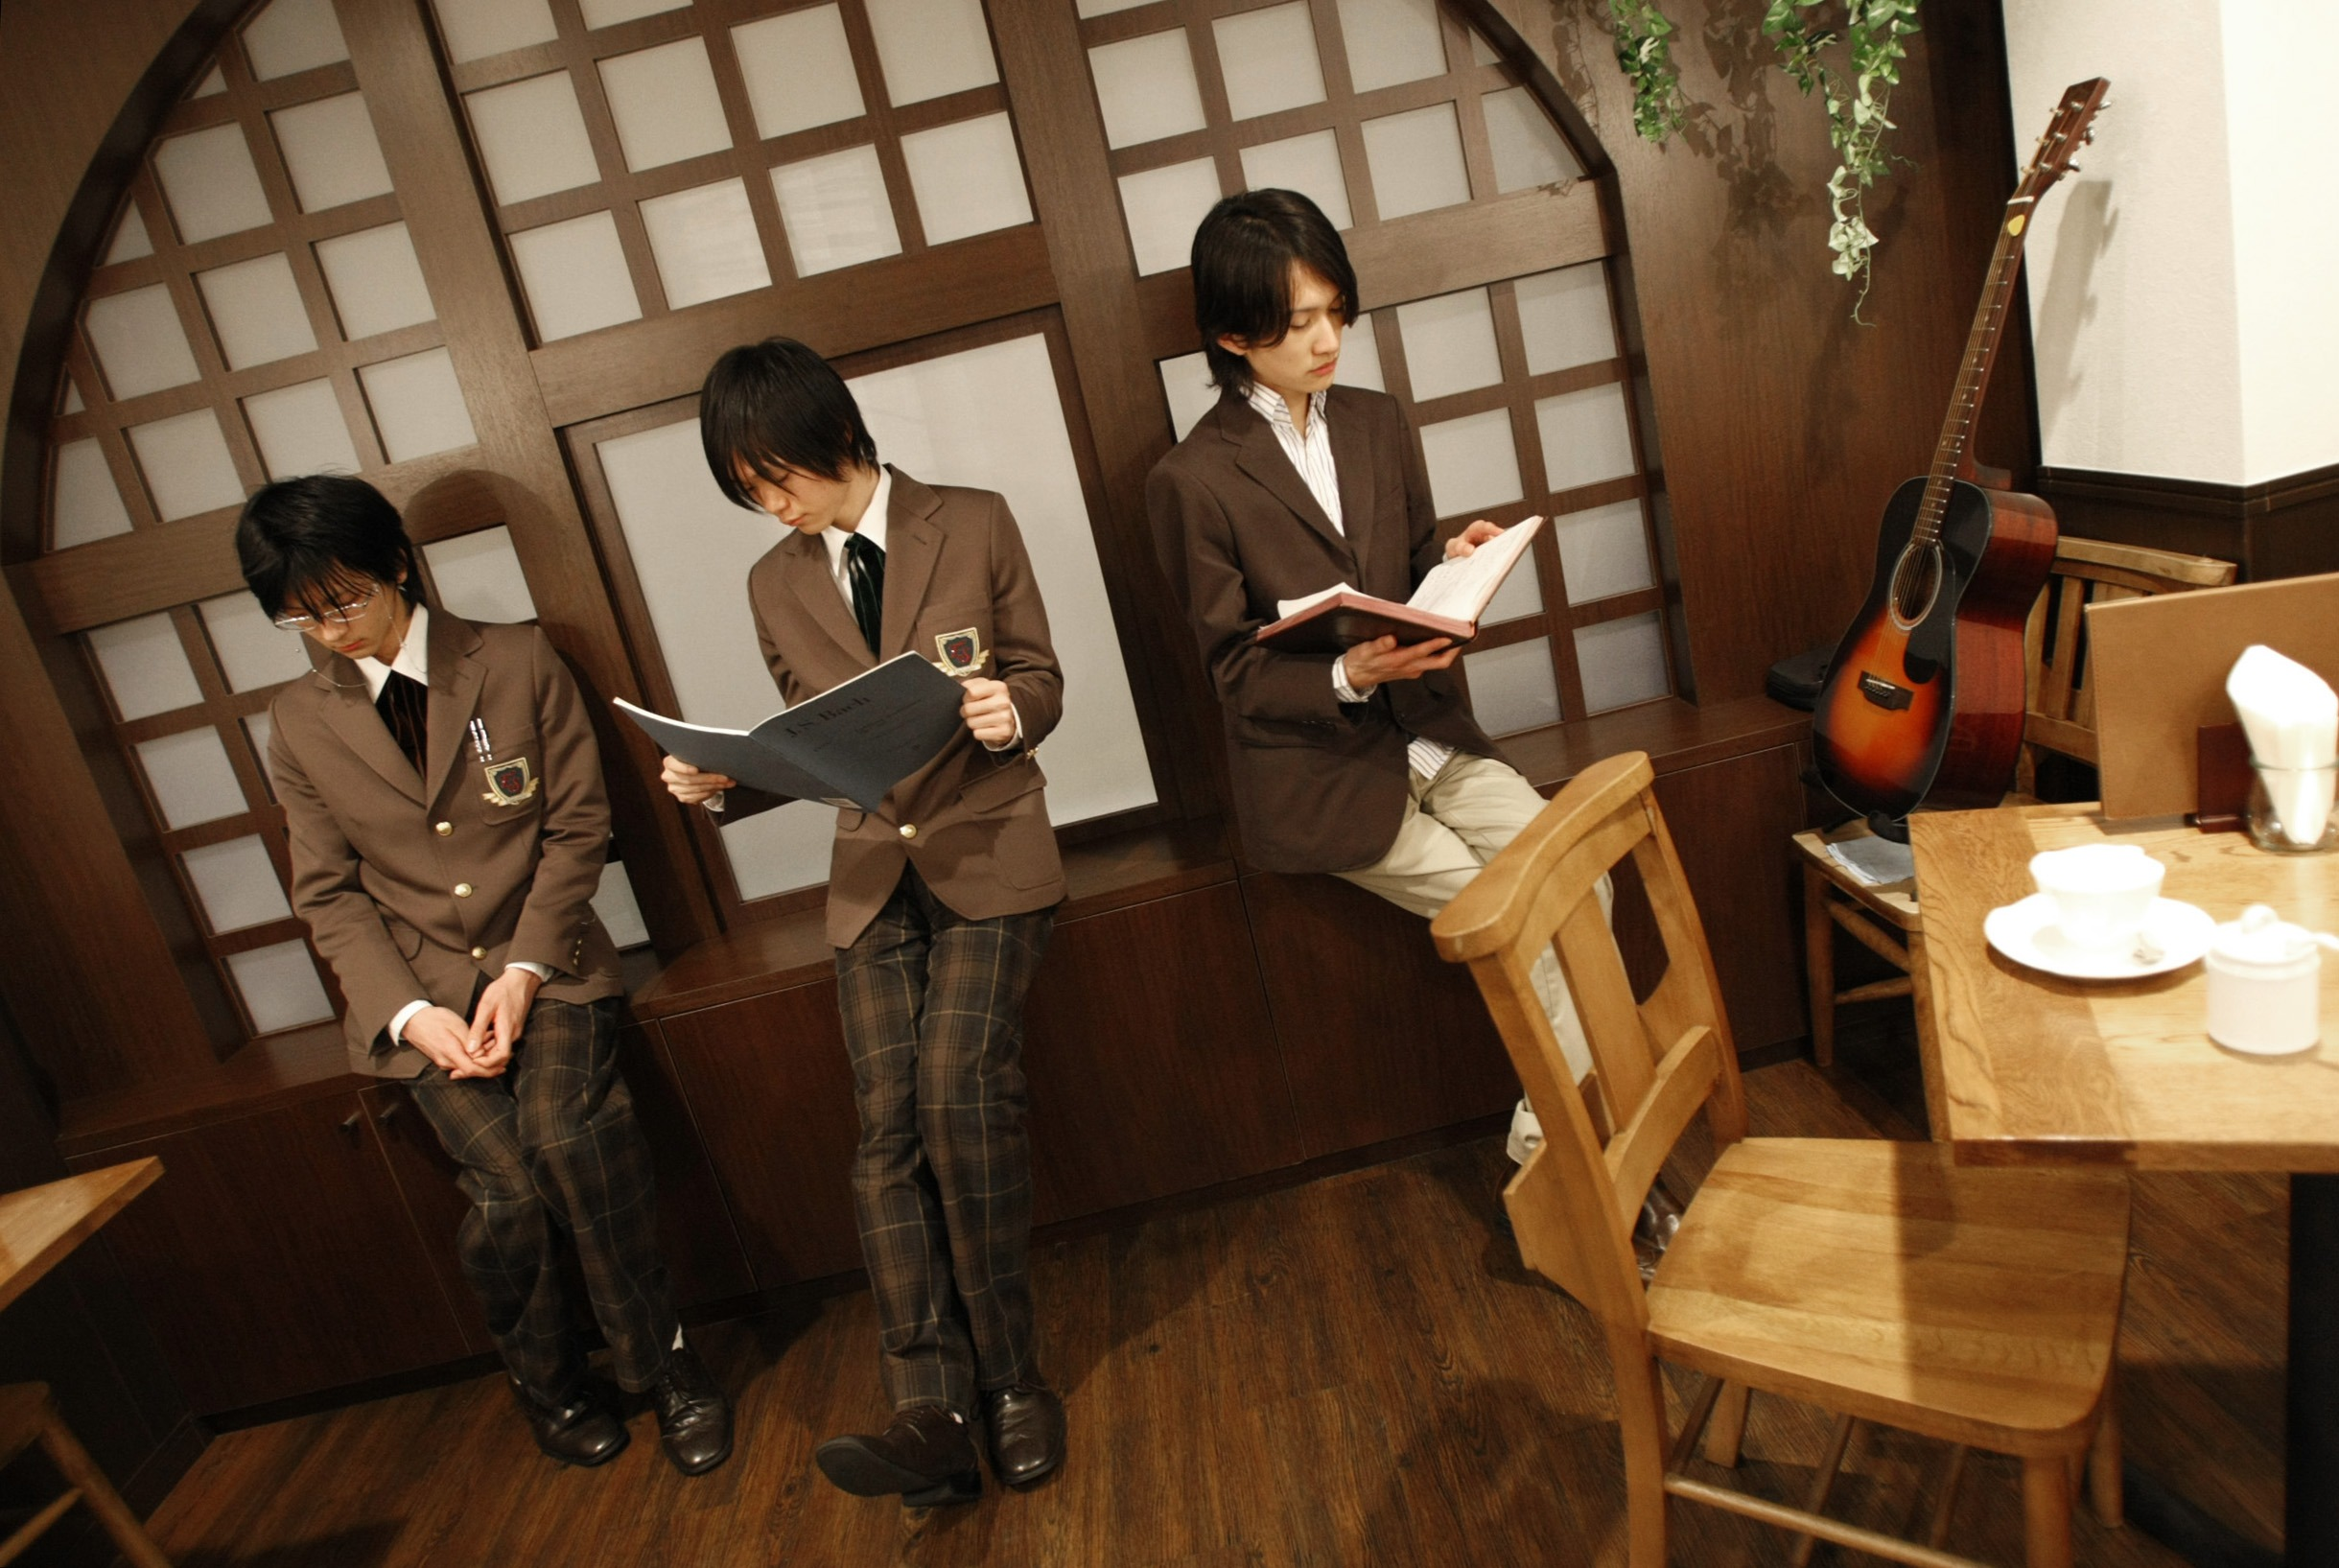 Left to right: Waiters Ritsuki Sunomiy, Yuta Asami and Makoto Aoba, dressed in costumes, pose at Edelstein cafe in Tokyo, Japan, yesterday.